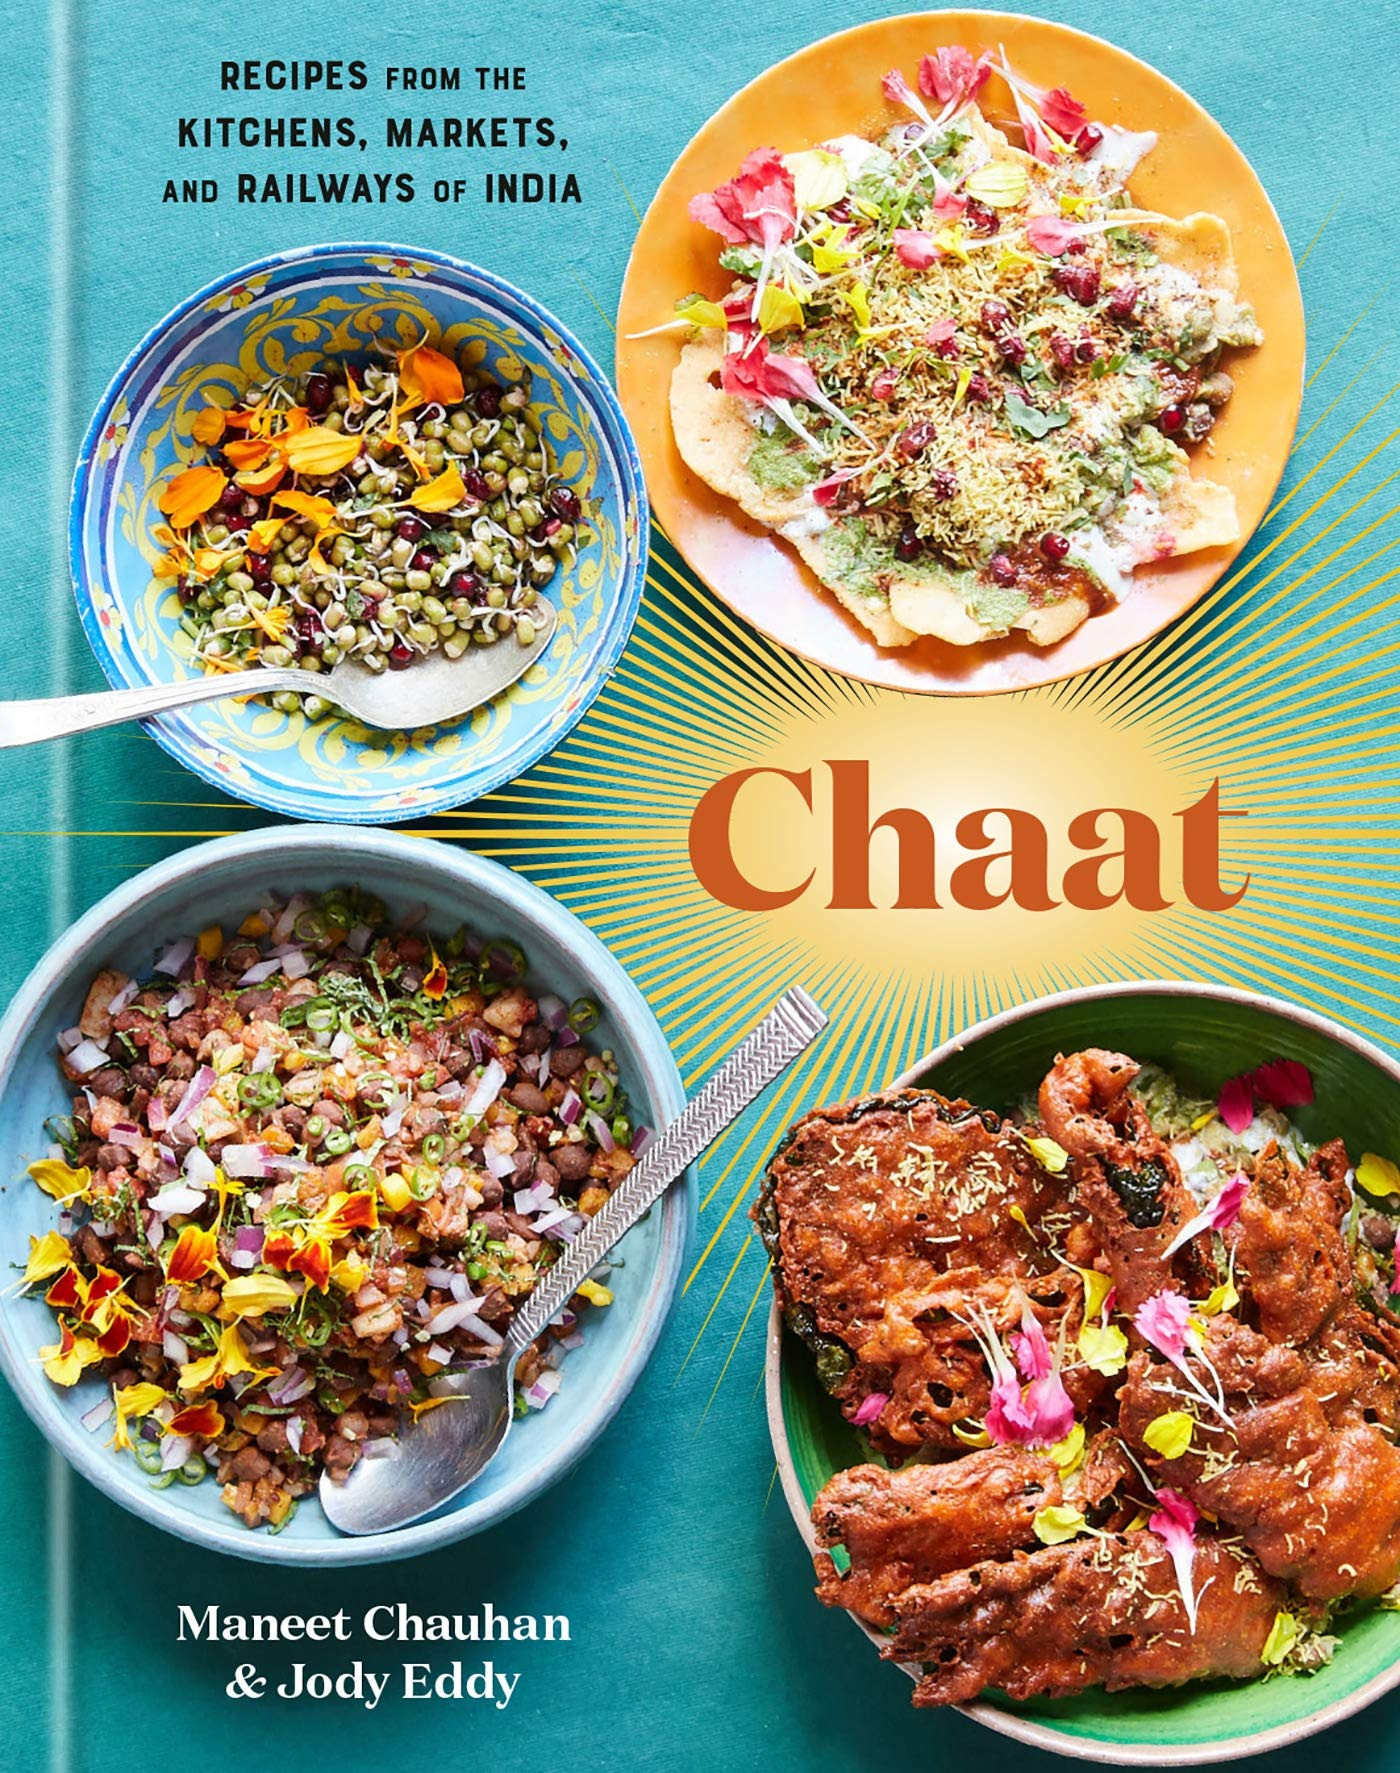 book cover of Chaat Recipes from the Kitchens Markets and Railways of India